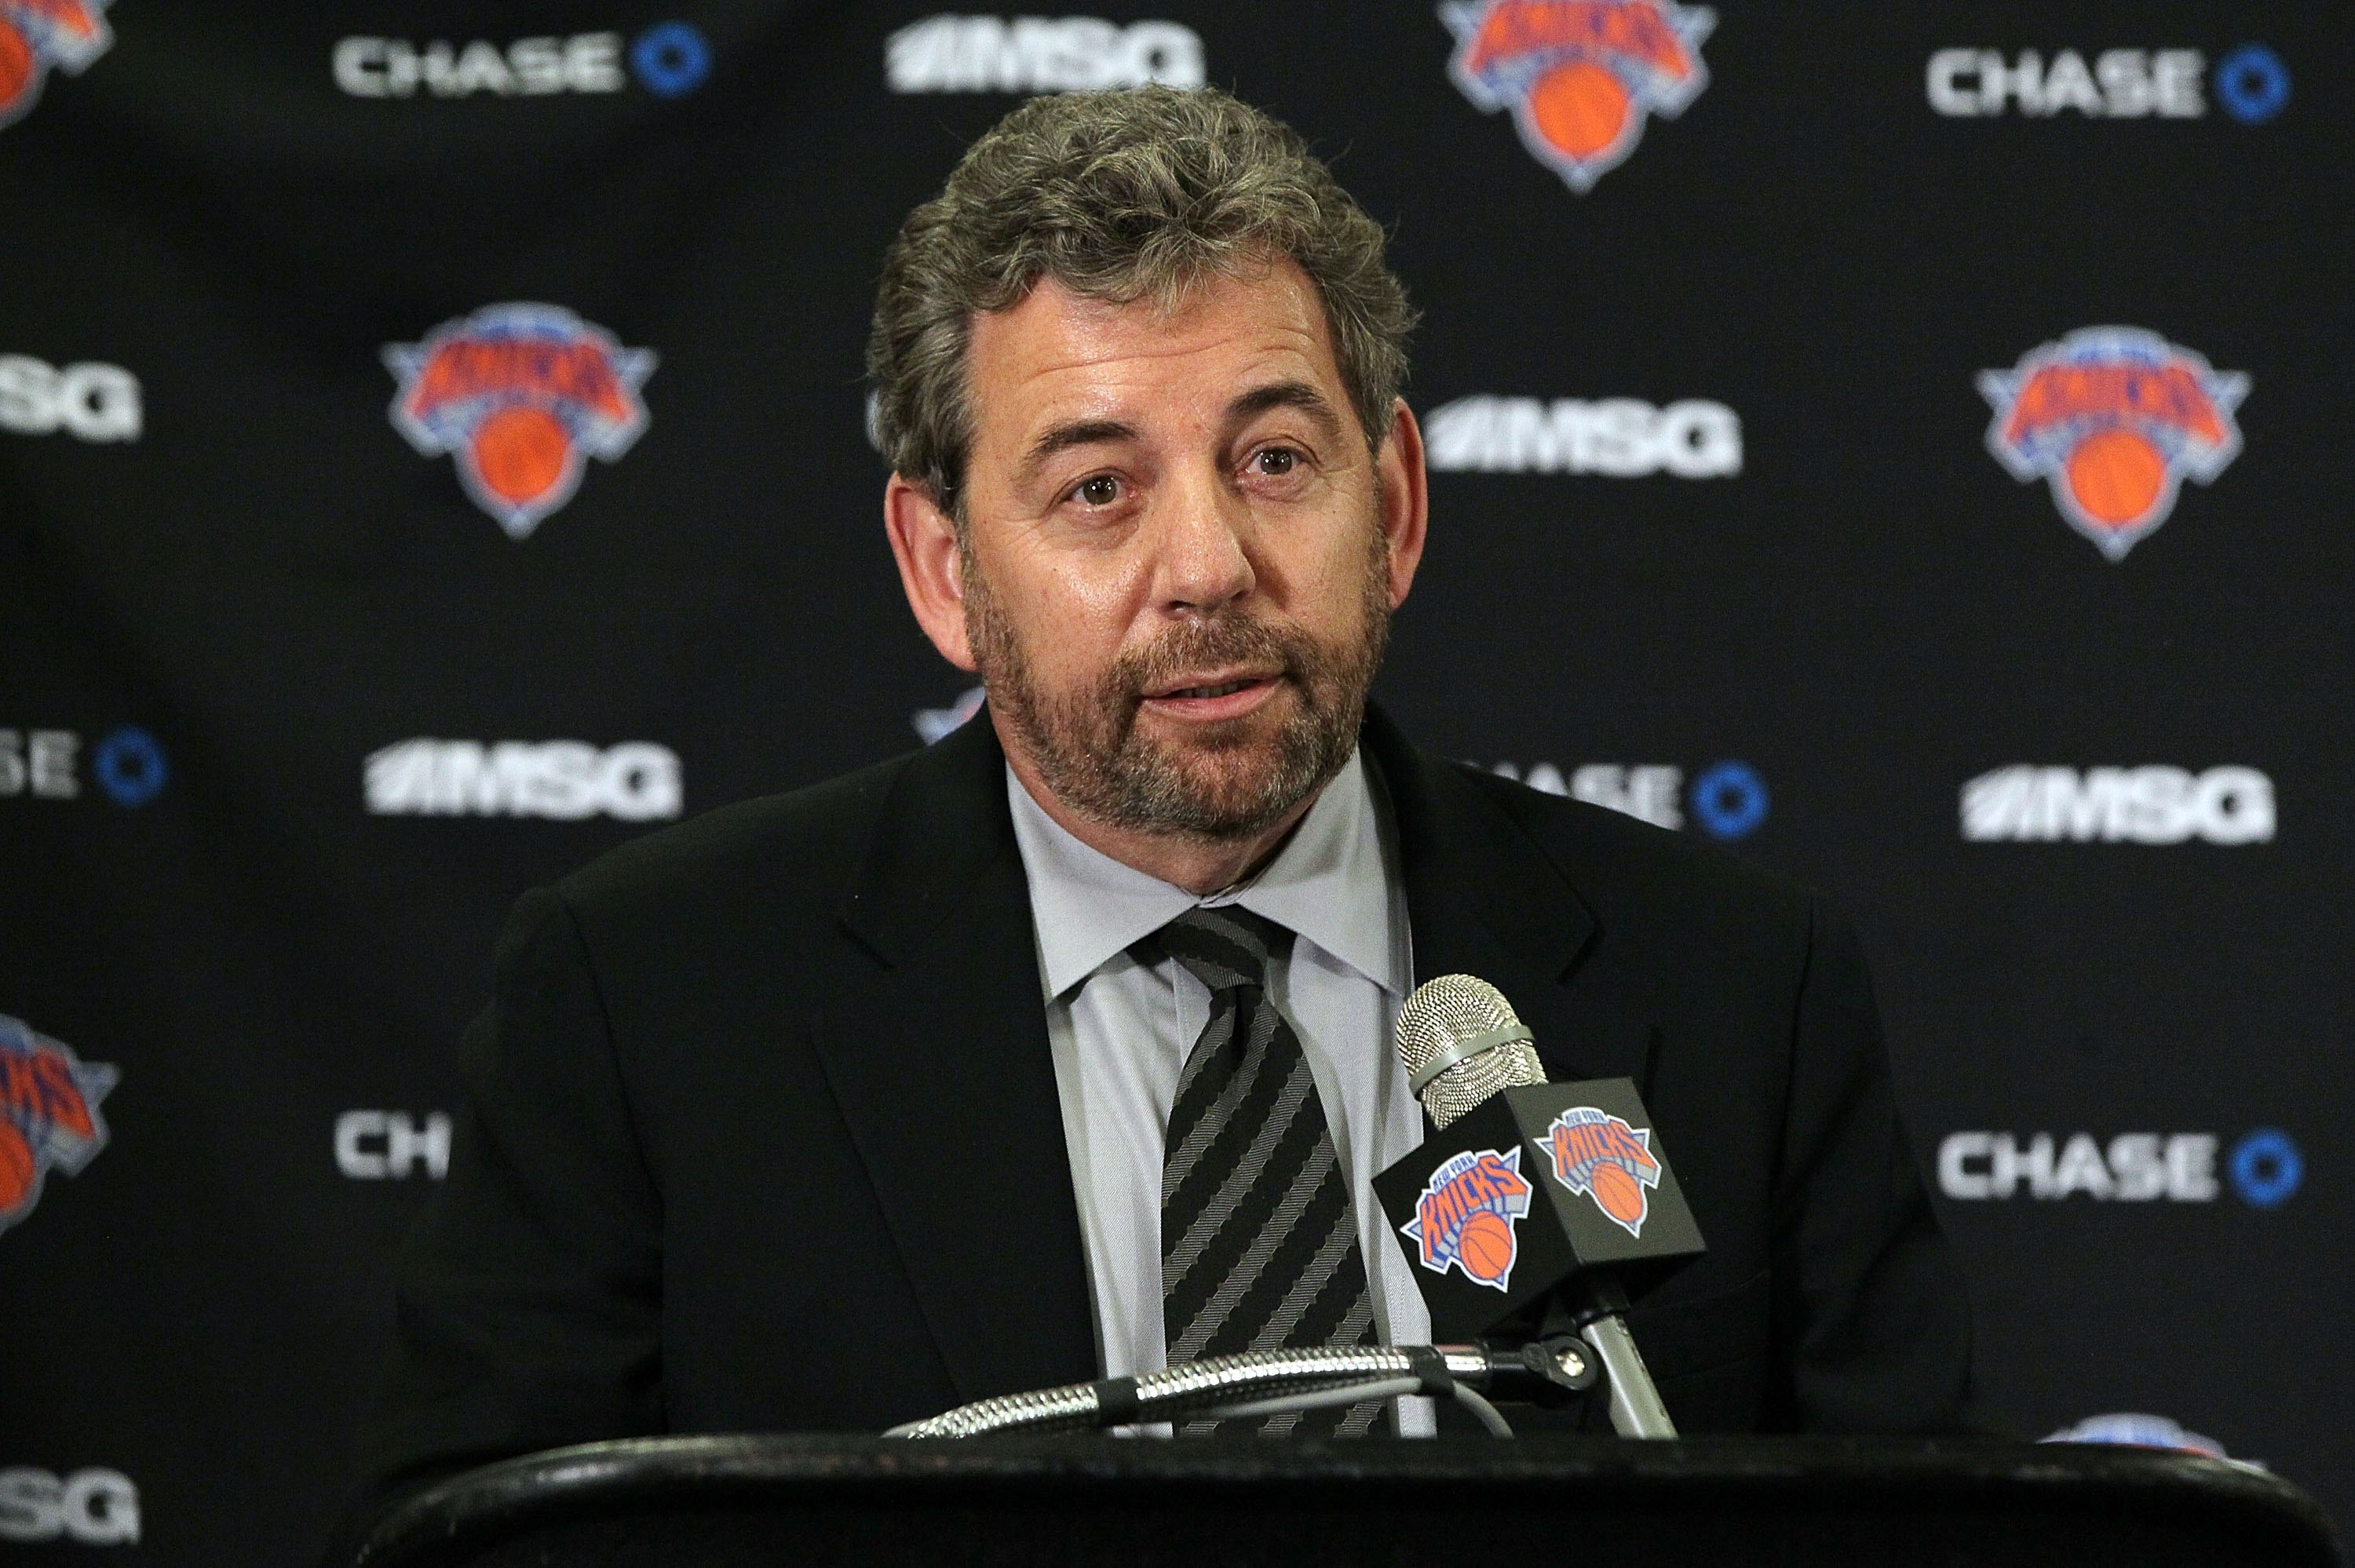 Executive Chairman of Madison Square Garden James L Dolan speaks to the media prior to the New York Knicks game against the Portland Trail Blazers on Wednesday, March 14 2012 at Madison Square Garden in New York.